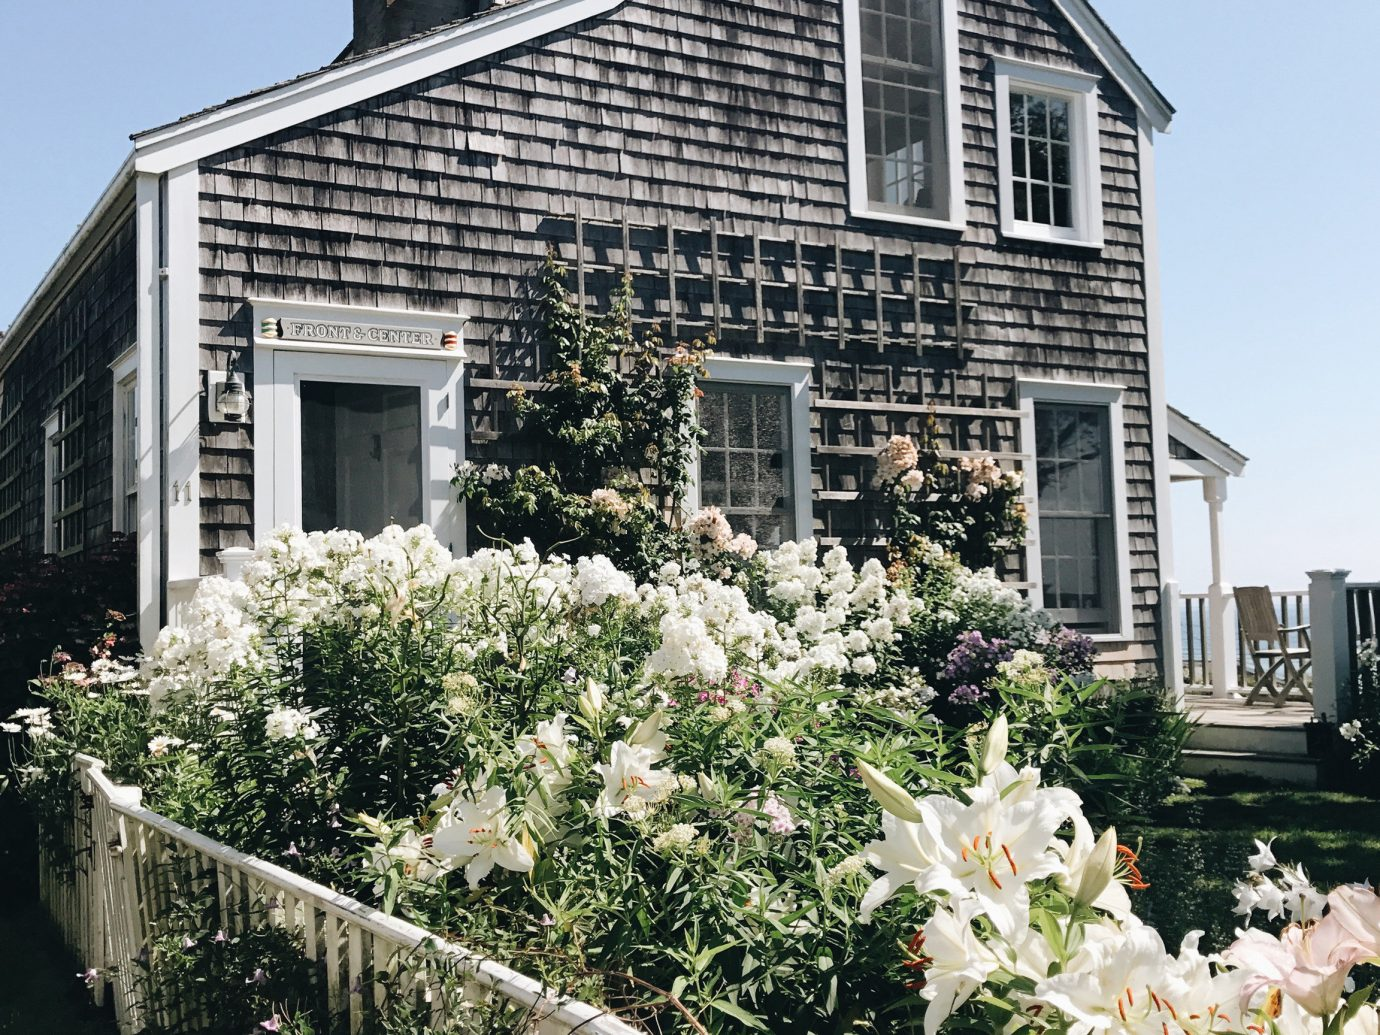 Boutique Hotels Health + Wellness Hotels Trip Ideas tree building outdoor house home cottage property residential area flower real estate farmhouse window estate siding suburb facade Garden historic house outdoor structure plant mansion roof landscaping stone